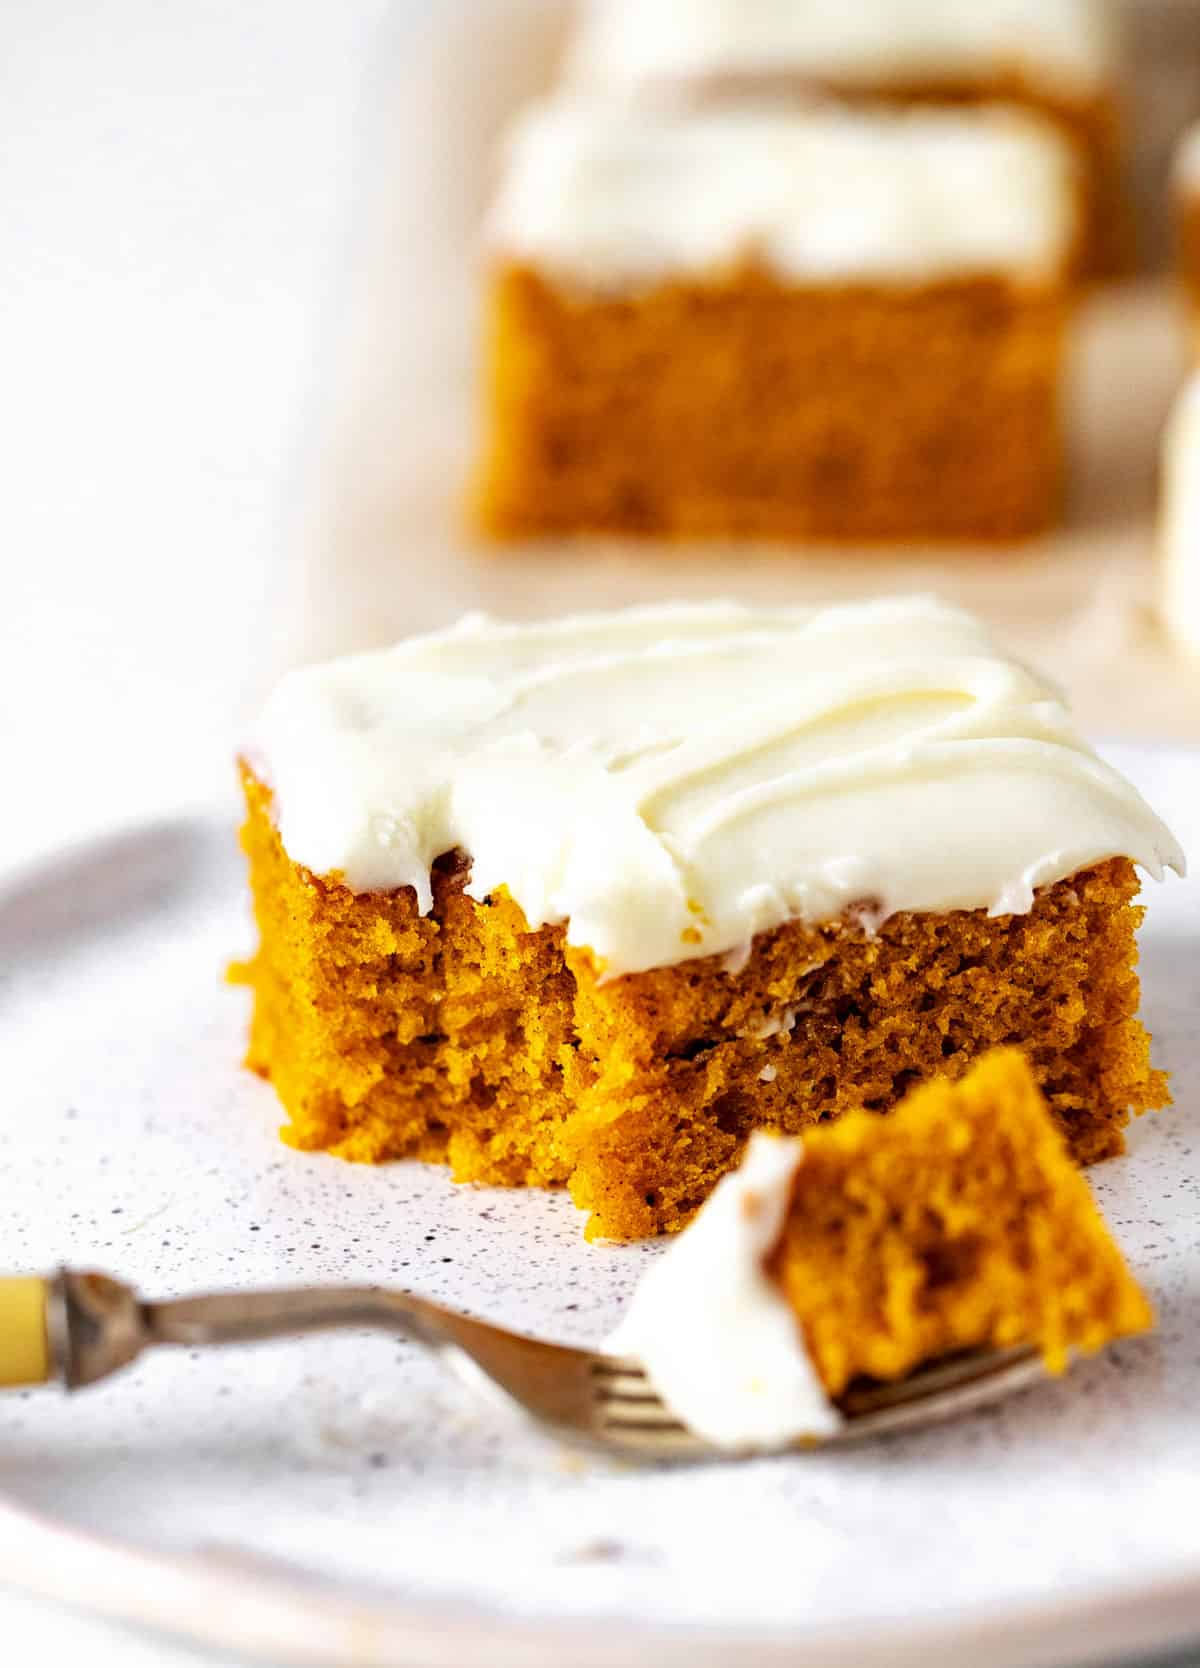 Fork with piece of pumpkin cake on white plate with eaten cake square, more on white background